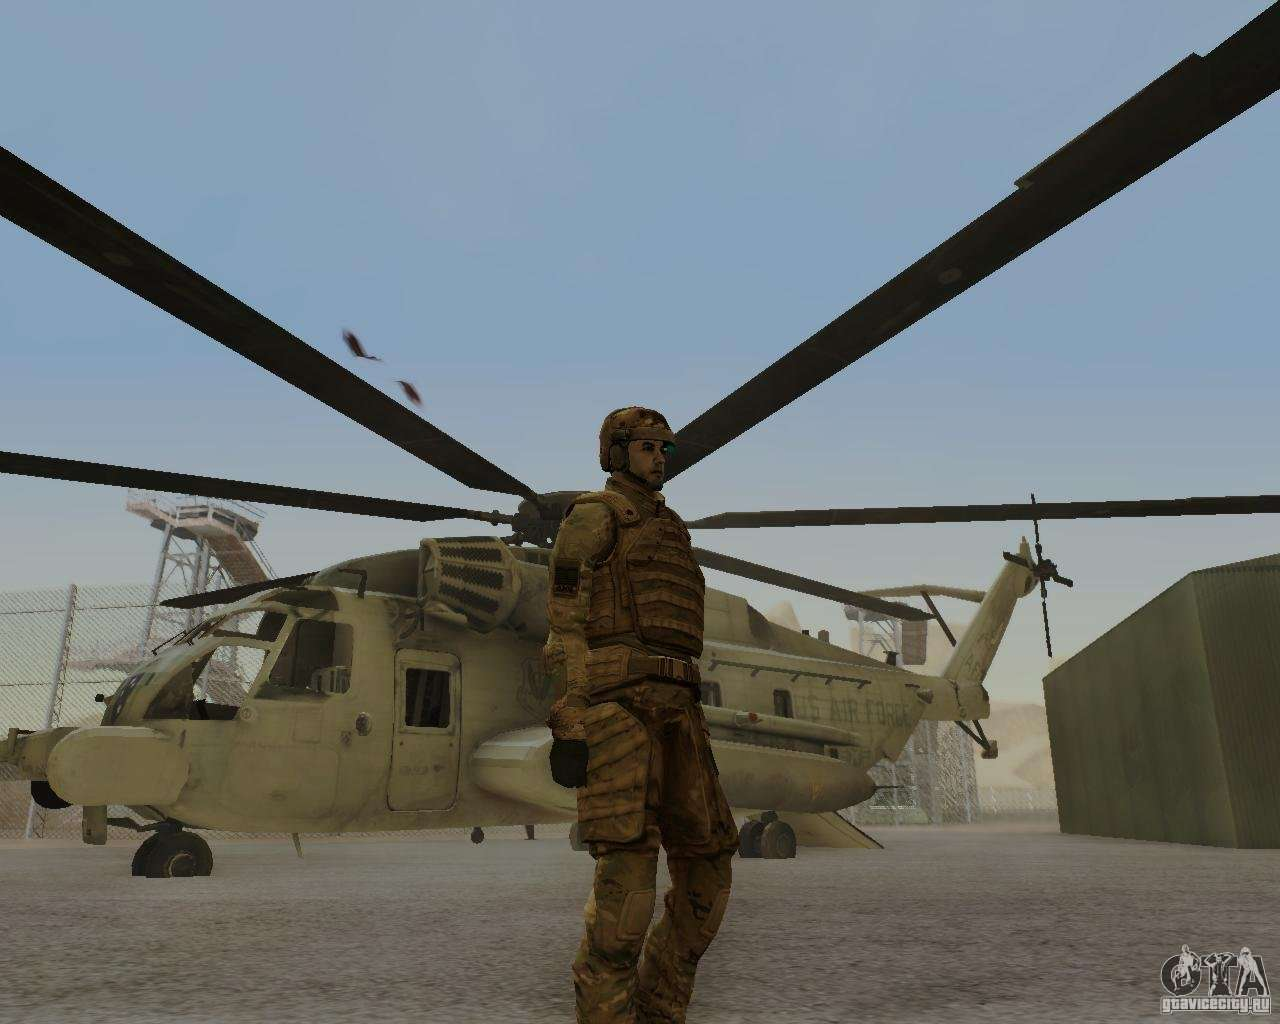 gta 5 army helicopter with 24238 Tom Clancys Ghost Recon on A Flying Jet furthermore 397628342 also 24238 Tom Clancys Ghost Recon likewise 3013 Sikorsky Uh 60 Black Hawk besides Clipart Helicopter 1.